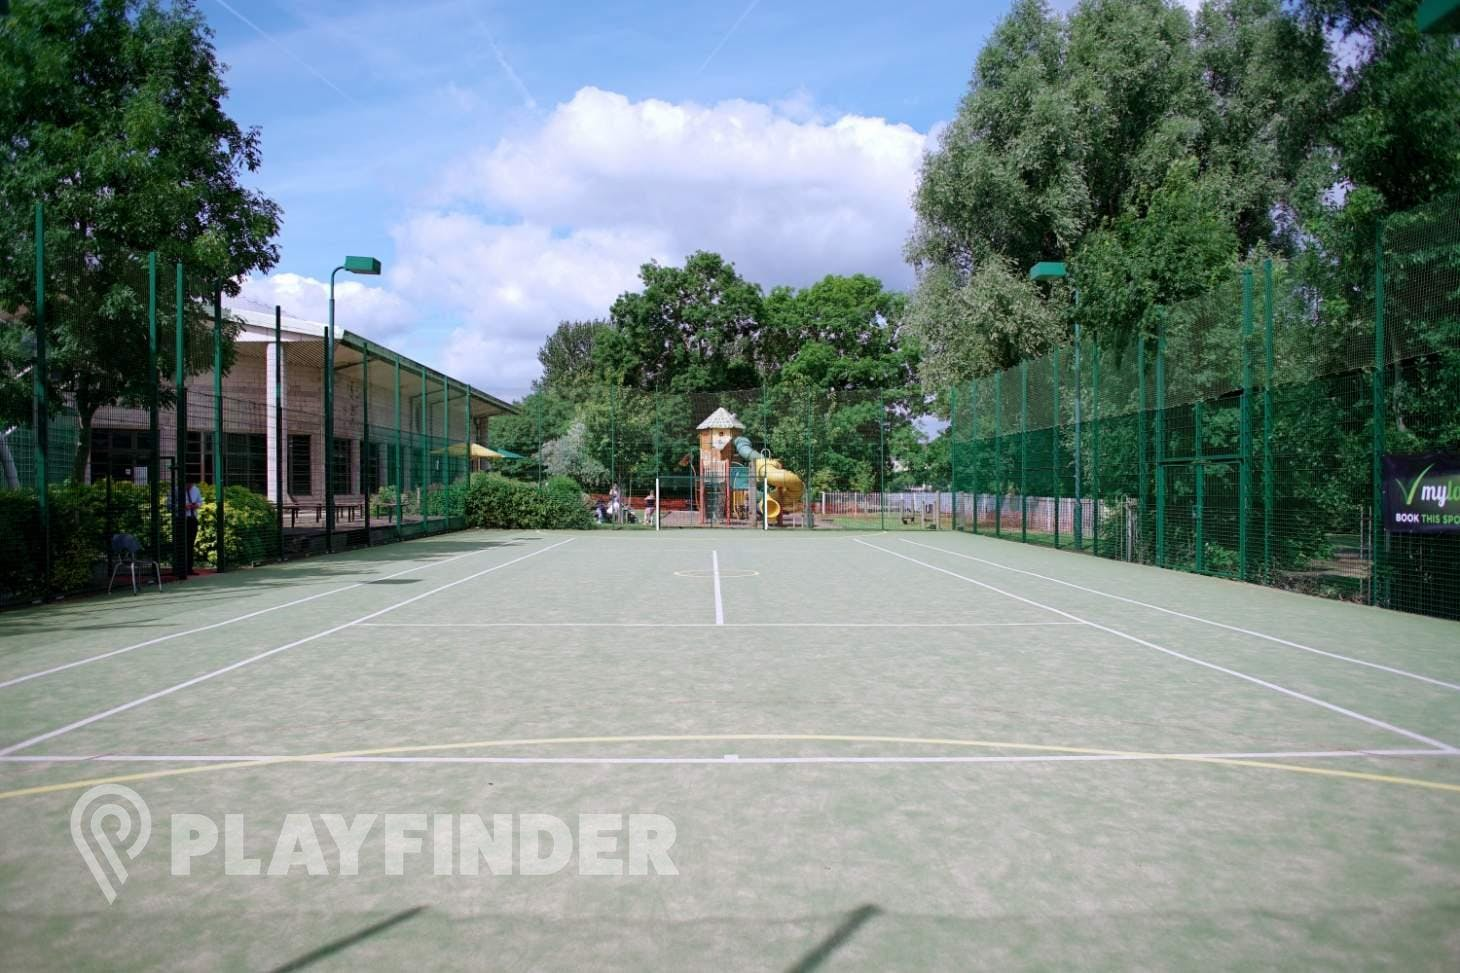 Windsor Leisure Centre 5 a side | Astroturf football pitch